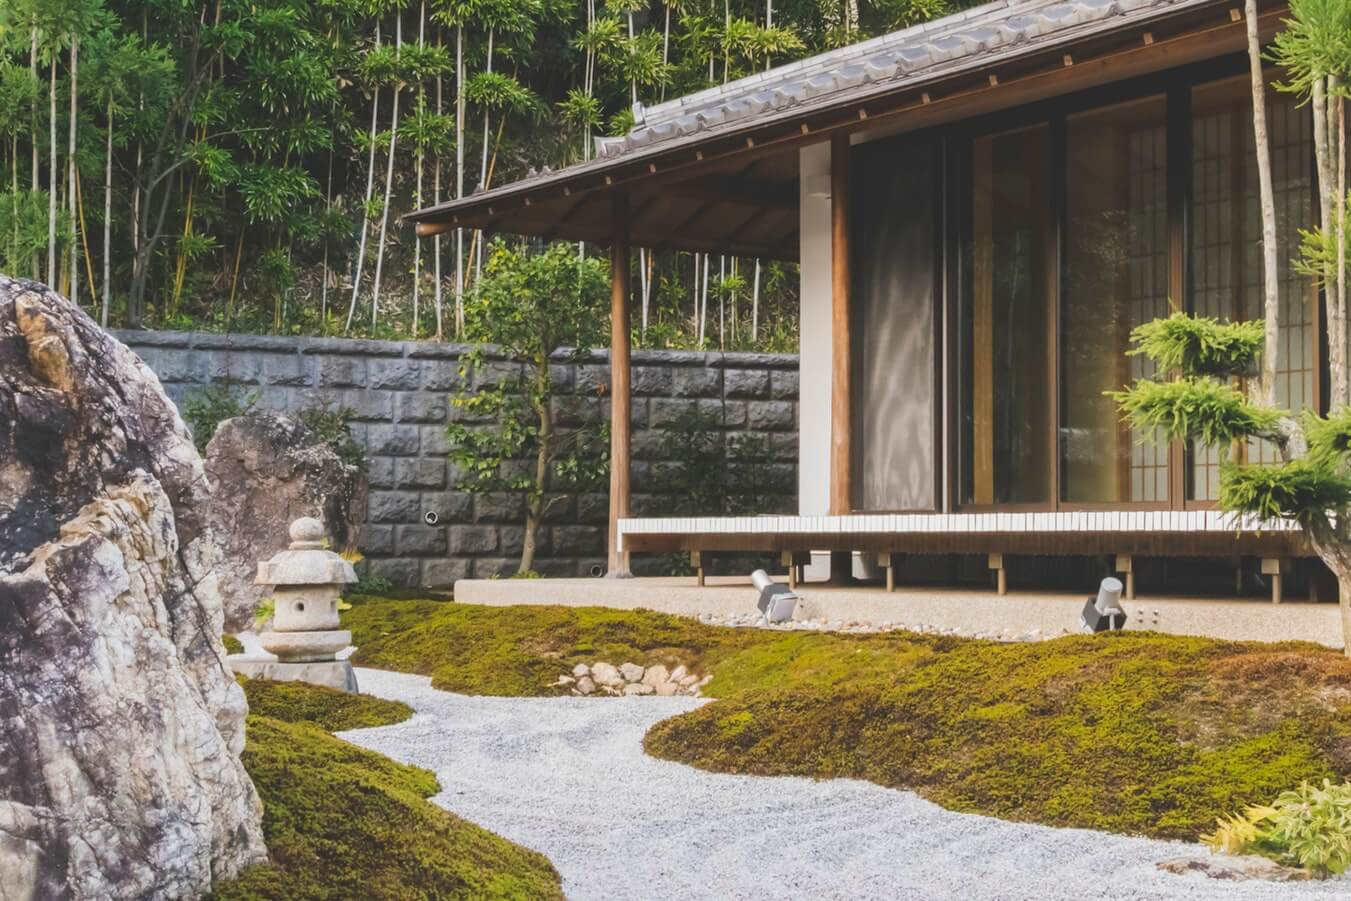 A Japanese garden pathway shows how useful sand and gravel can be in landscaping.